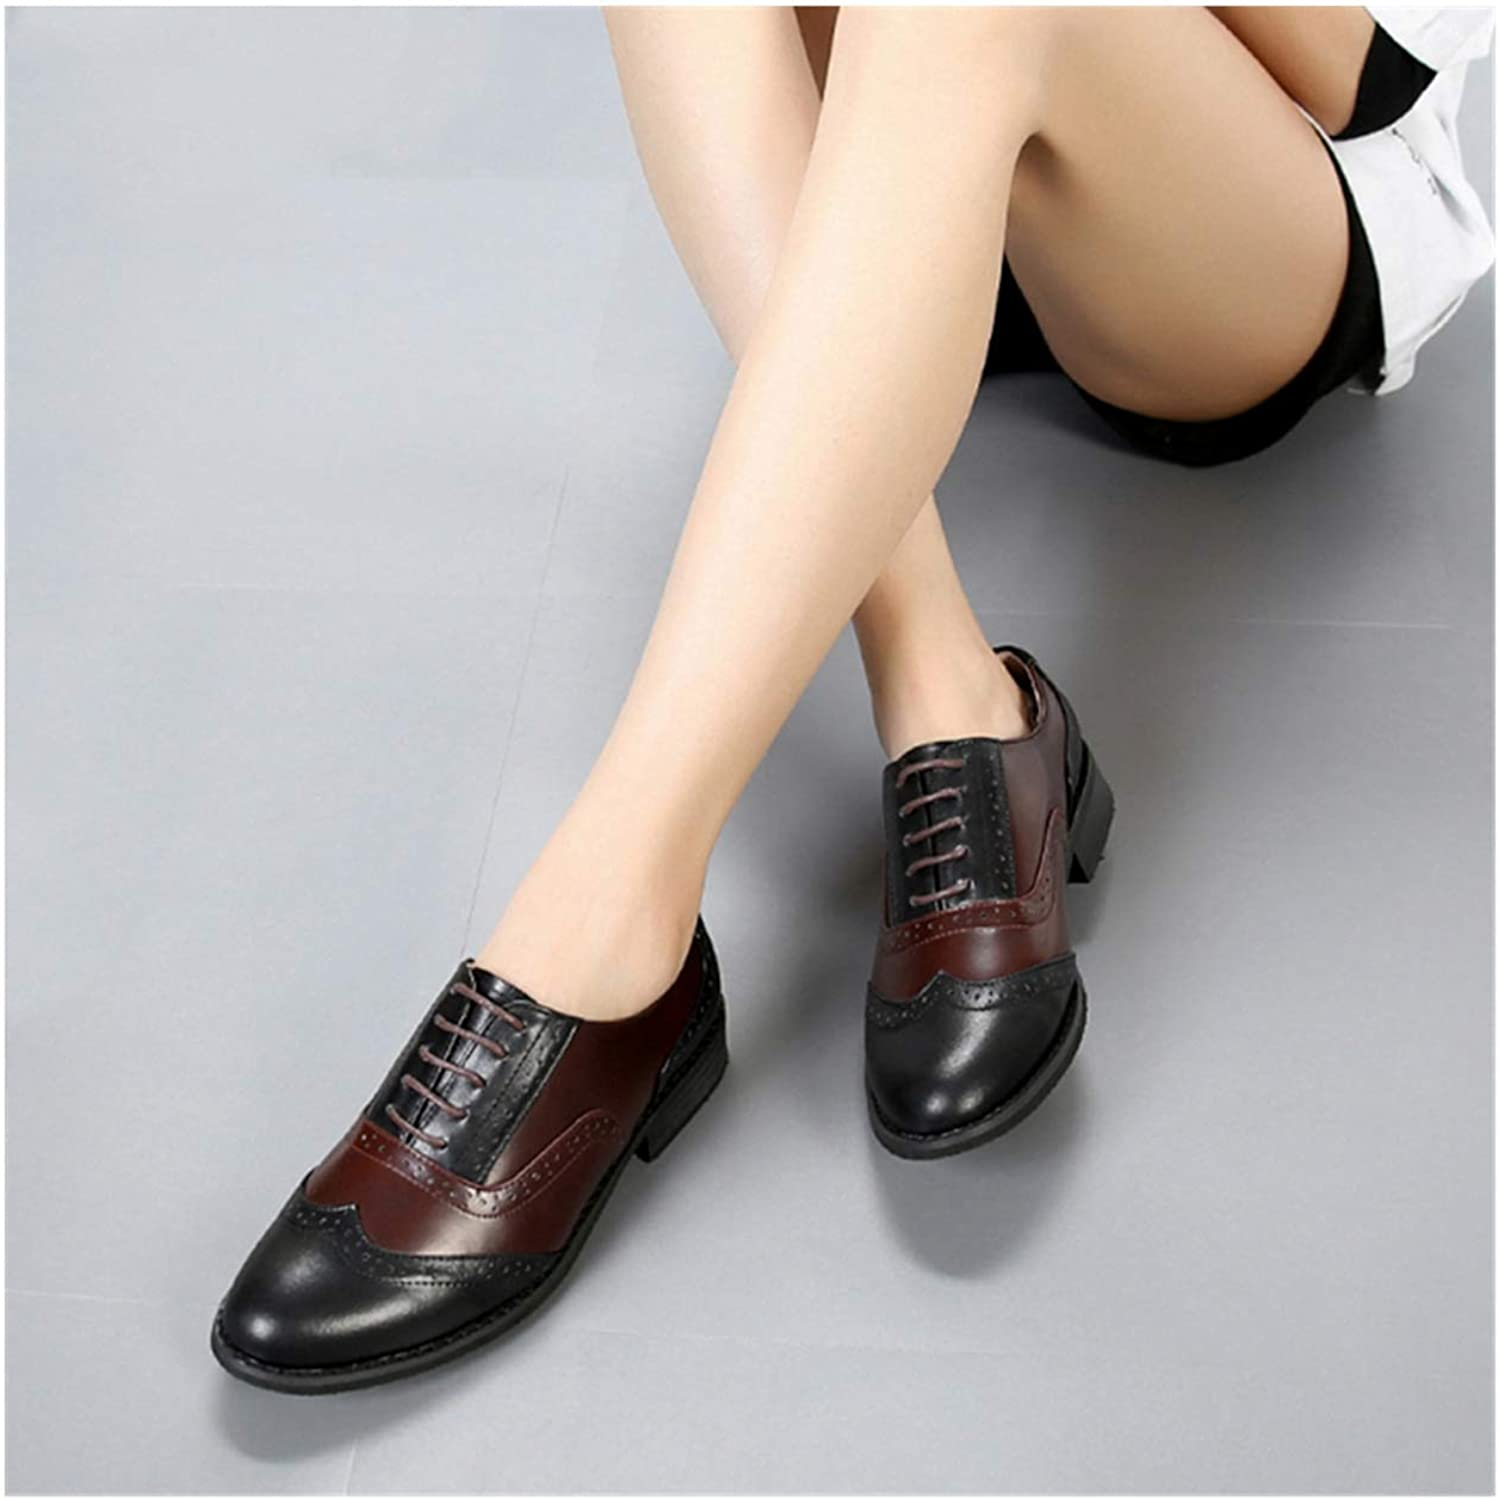 Women Flats Oxford Shoes Woman Genuine Leather Sneakers Ladies Vintage Lace Up Casual Shoes Oxfords Shoes for Women